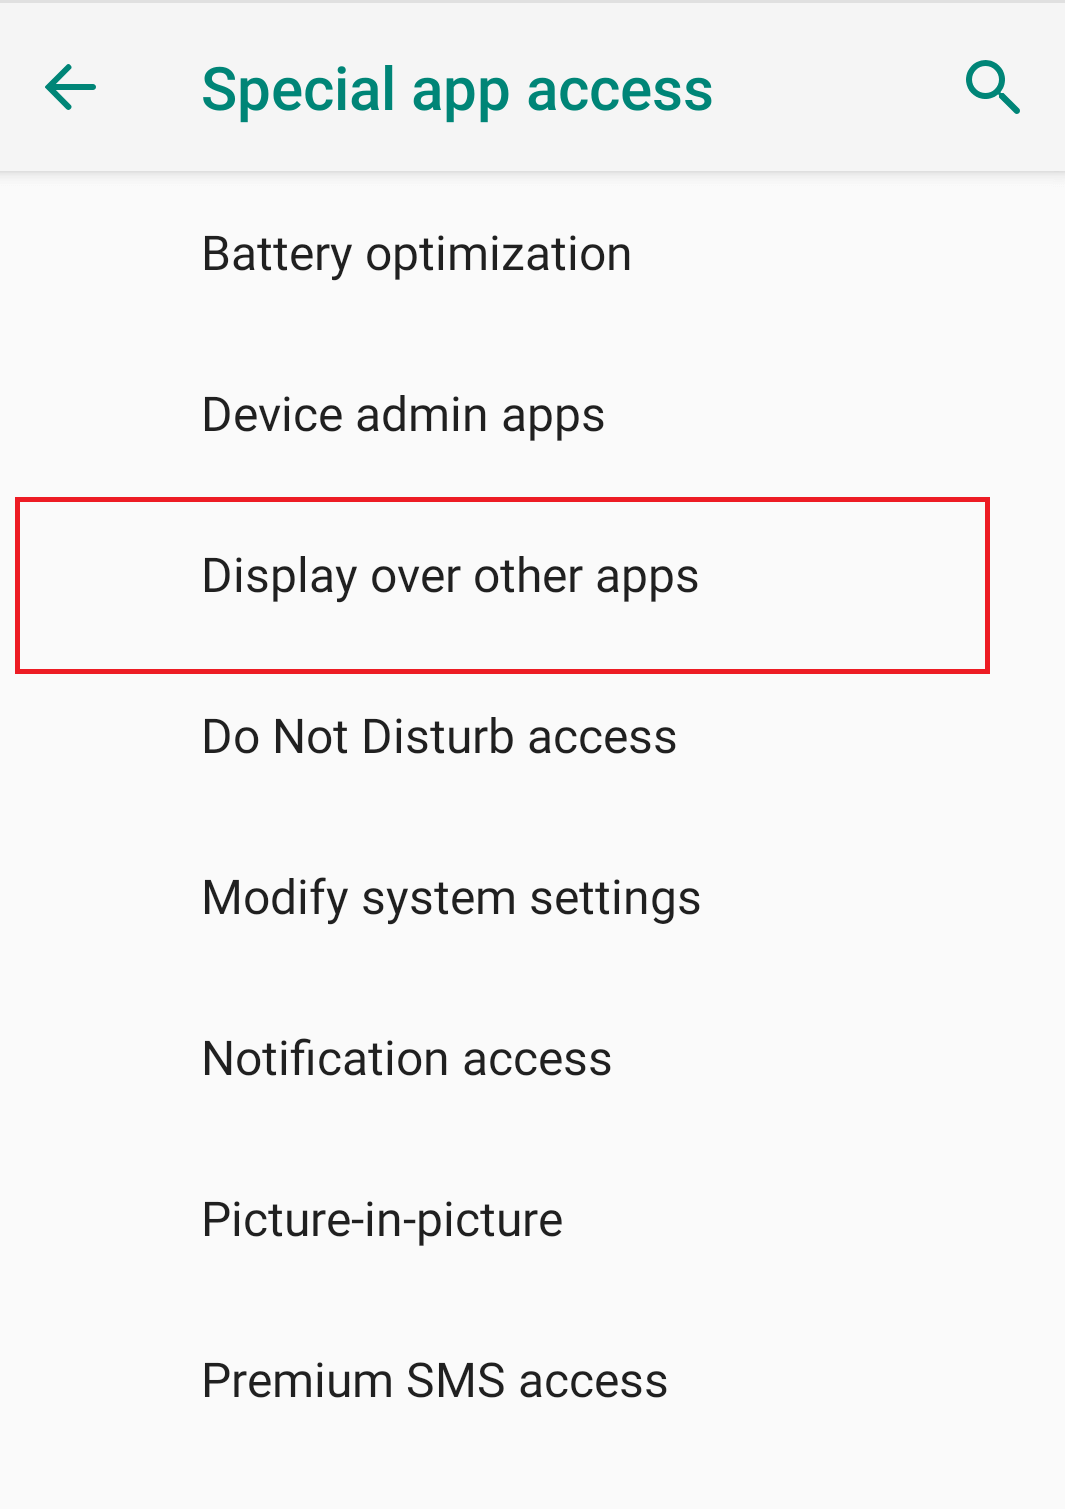 Tap on Display over other apps